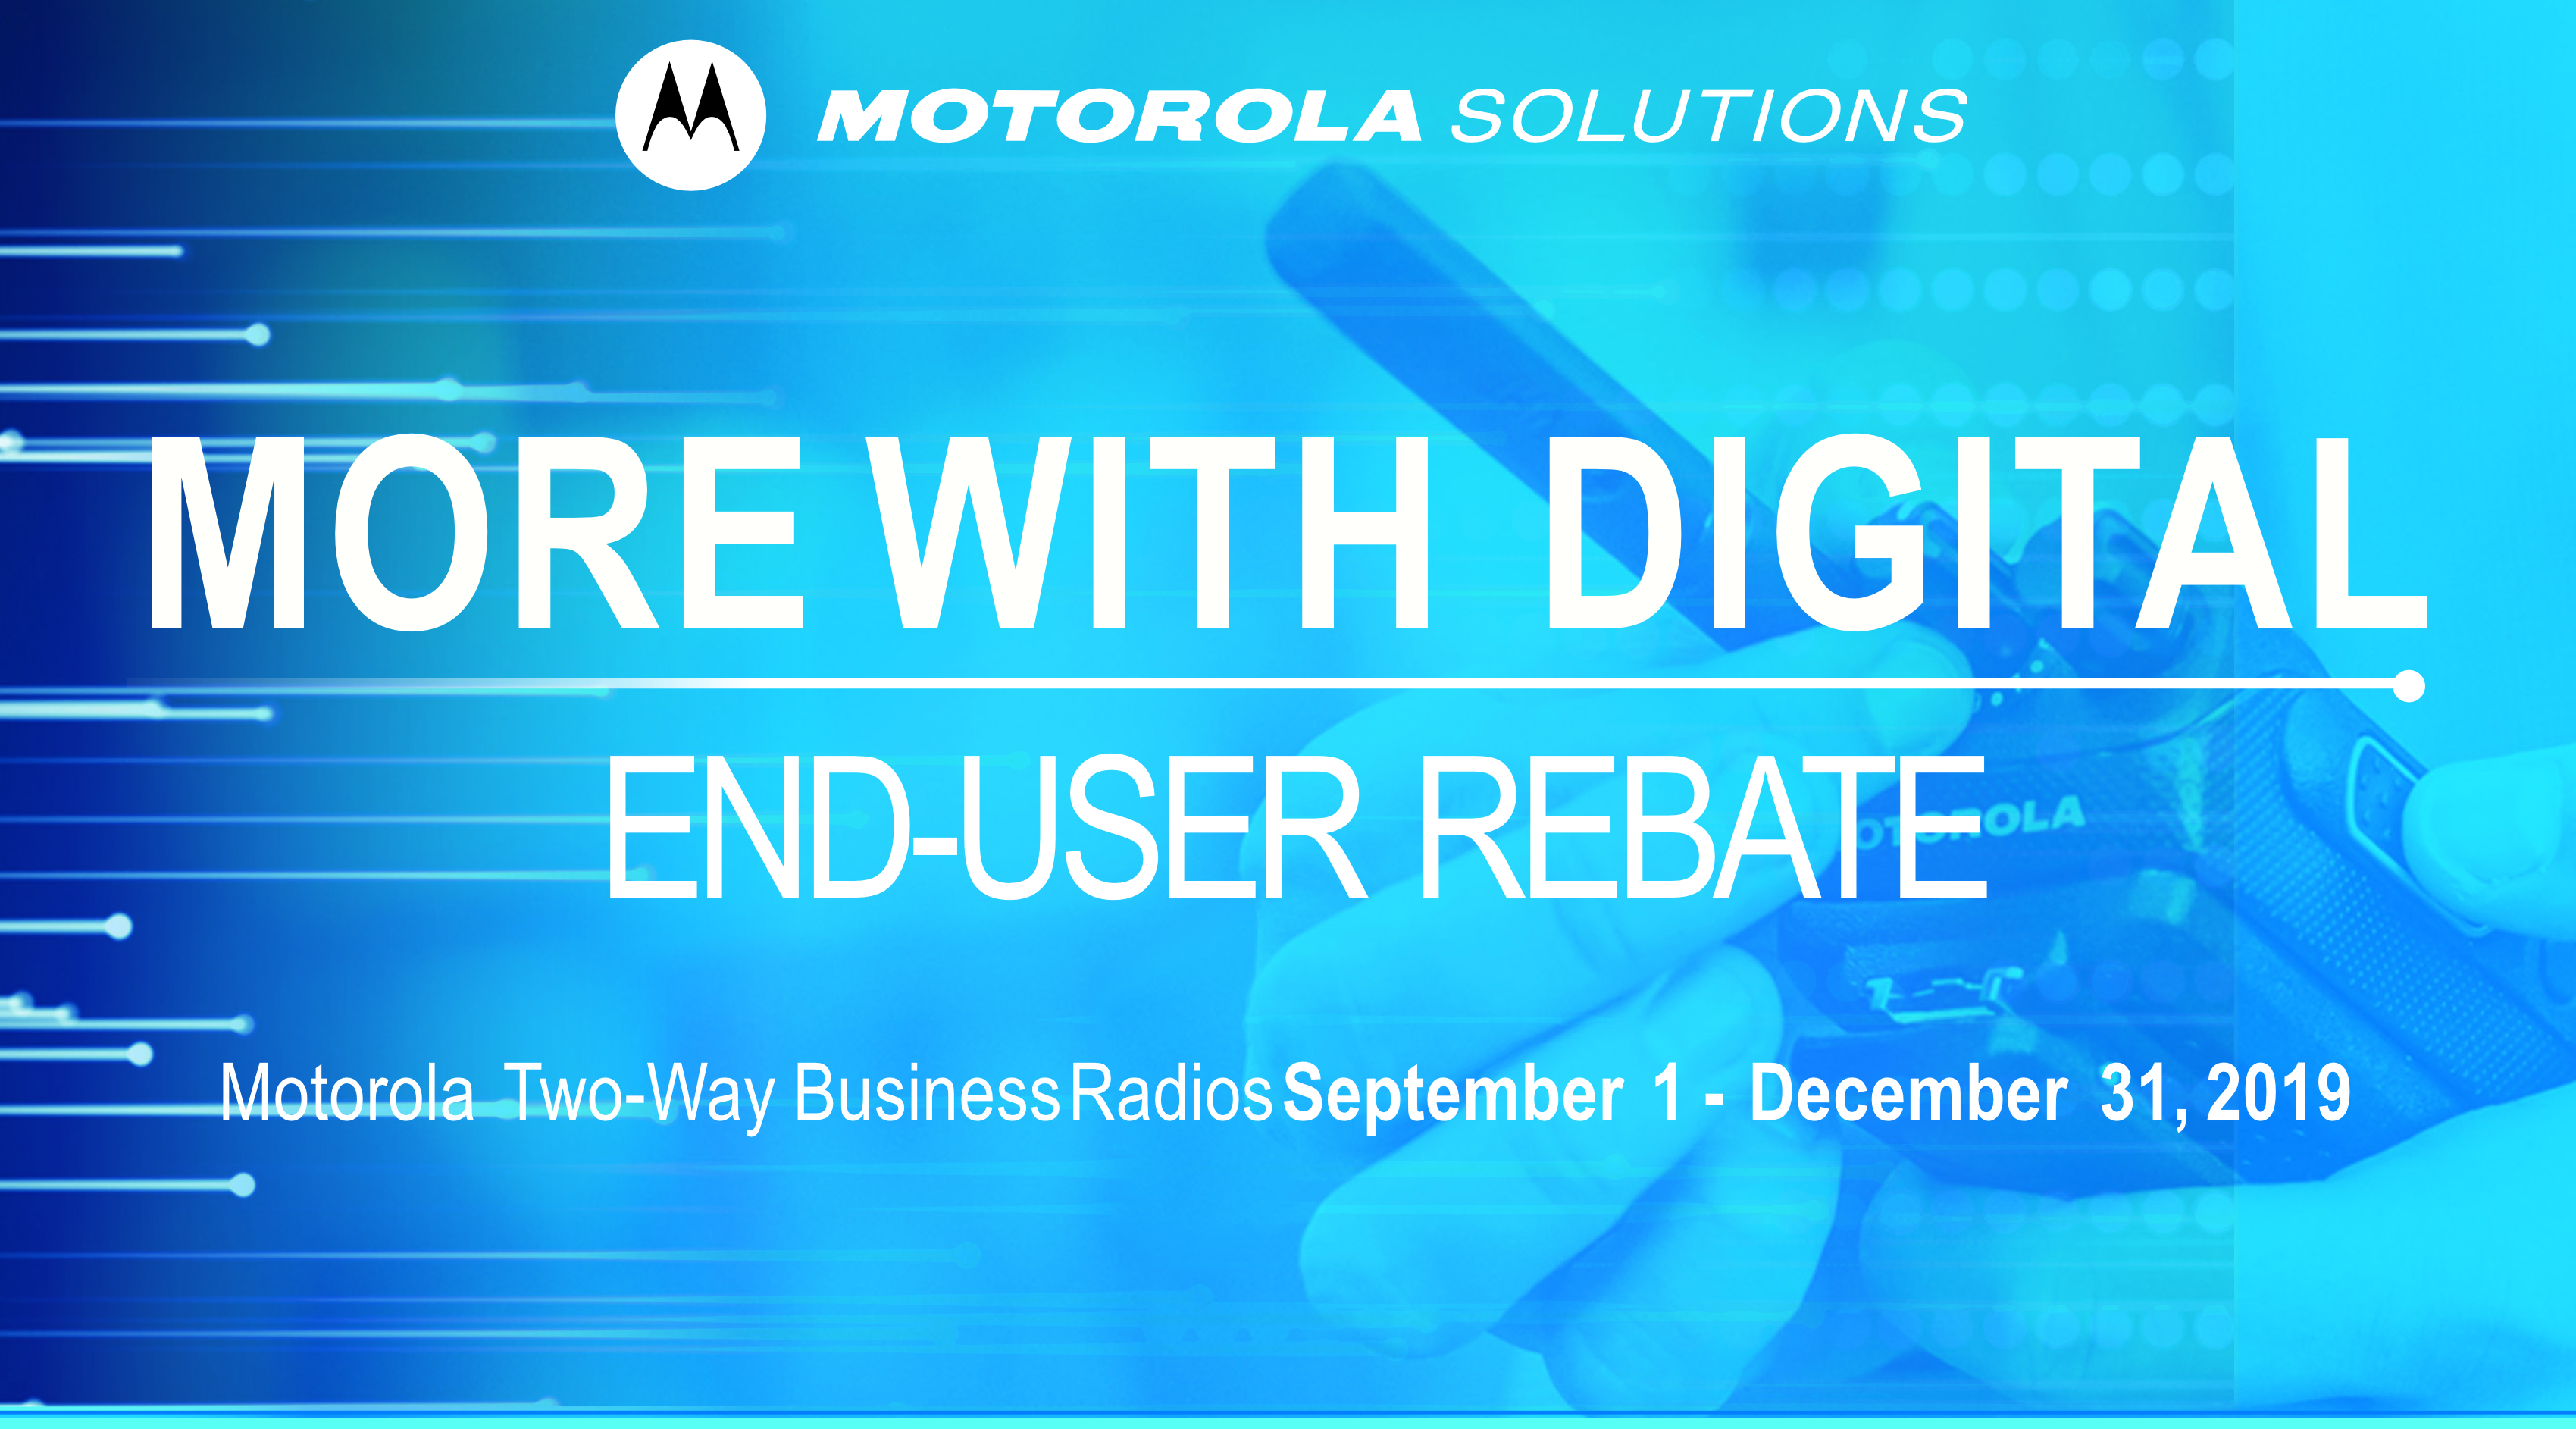 Motorola Fall More with Digital Rebate